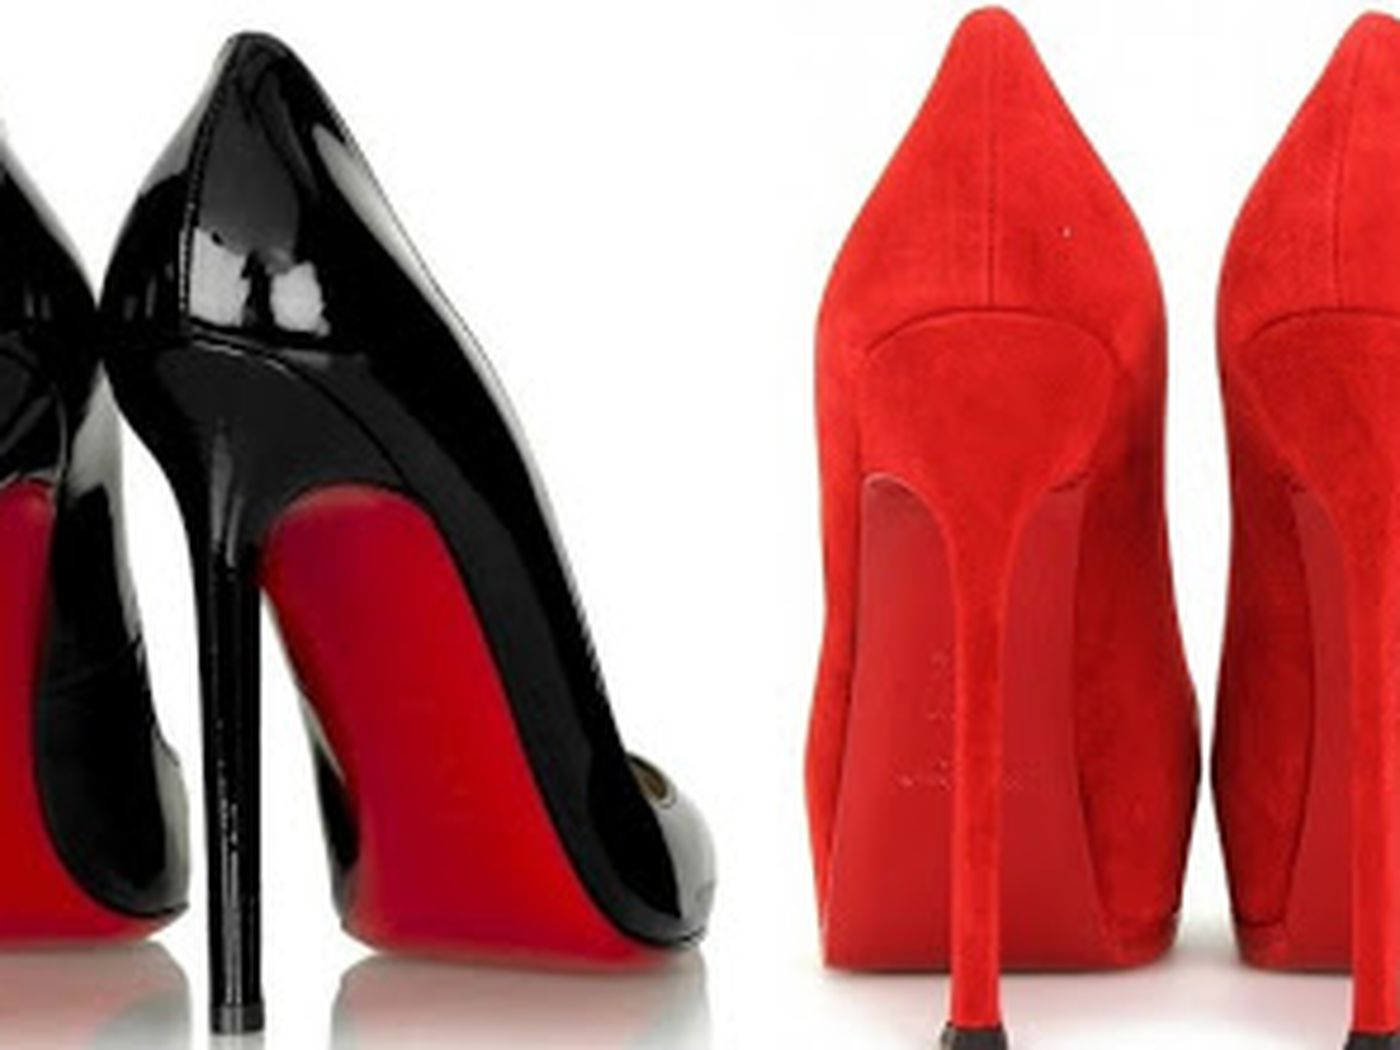 dc34b4b97d3 The 10 Most Infamous Footwear Lawsuits in High-Heeled History - Racked